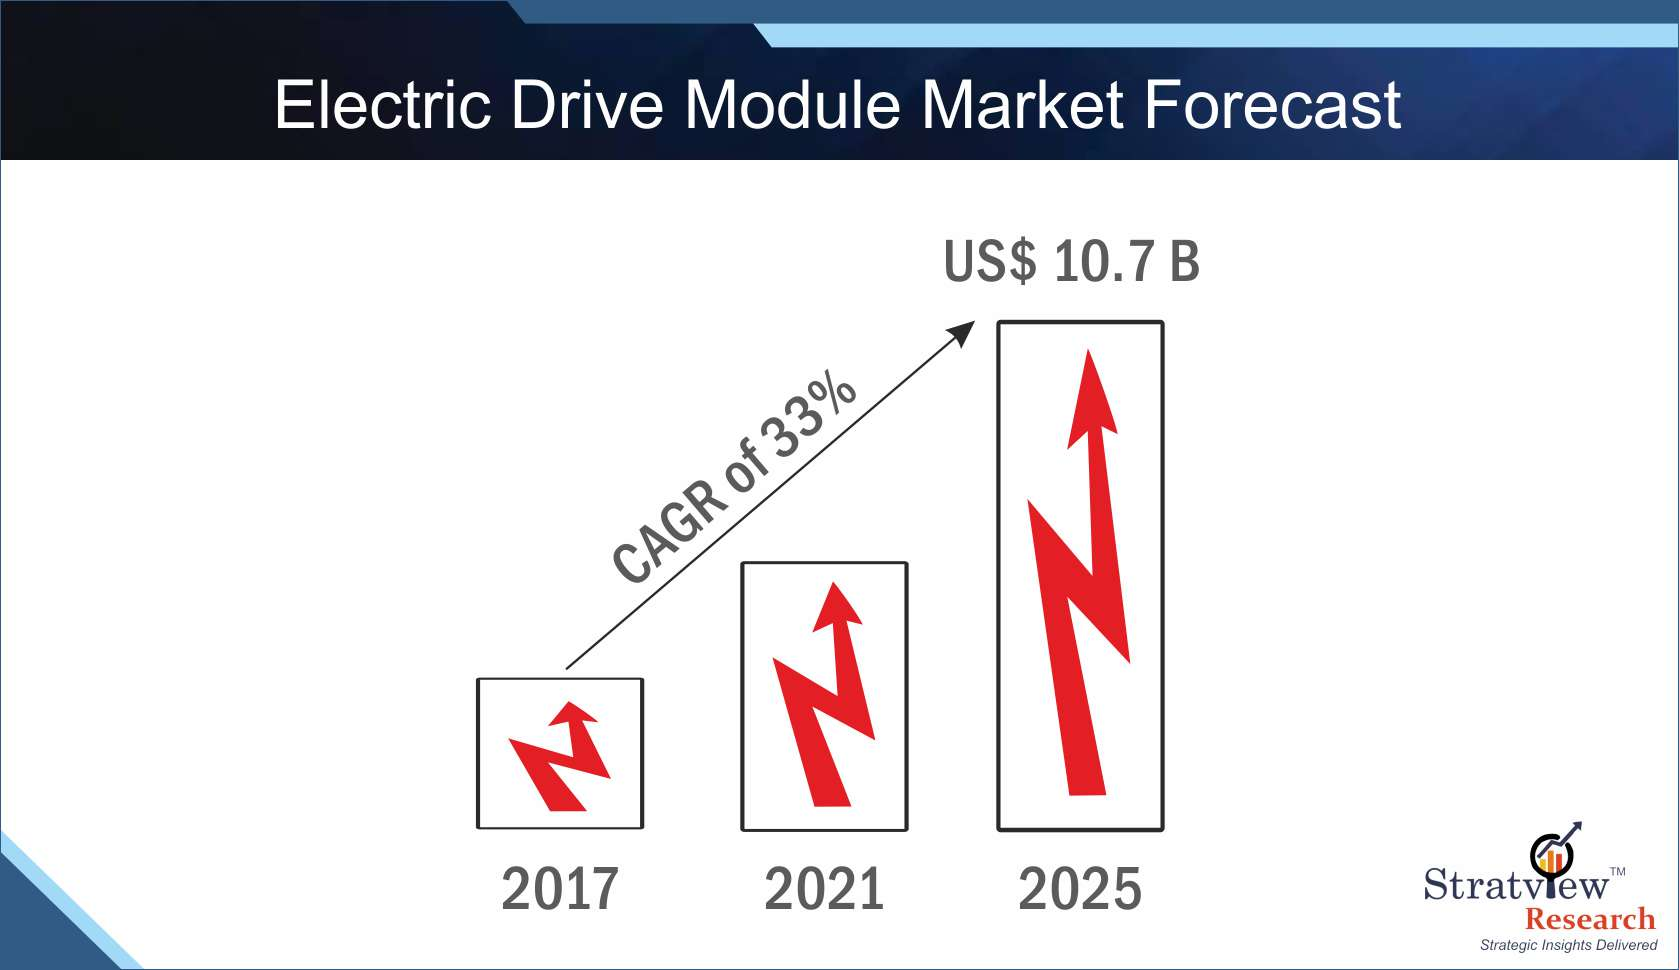 Electric Drive Module Market Forecast